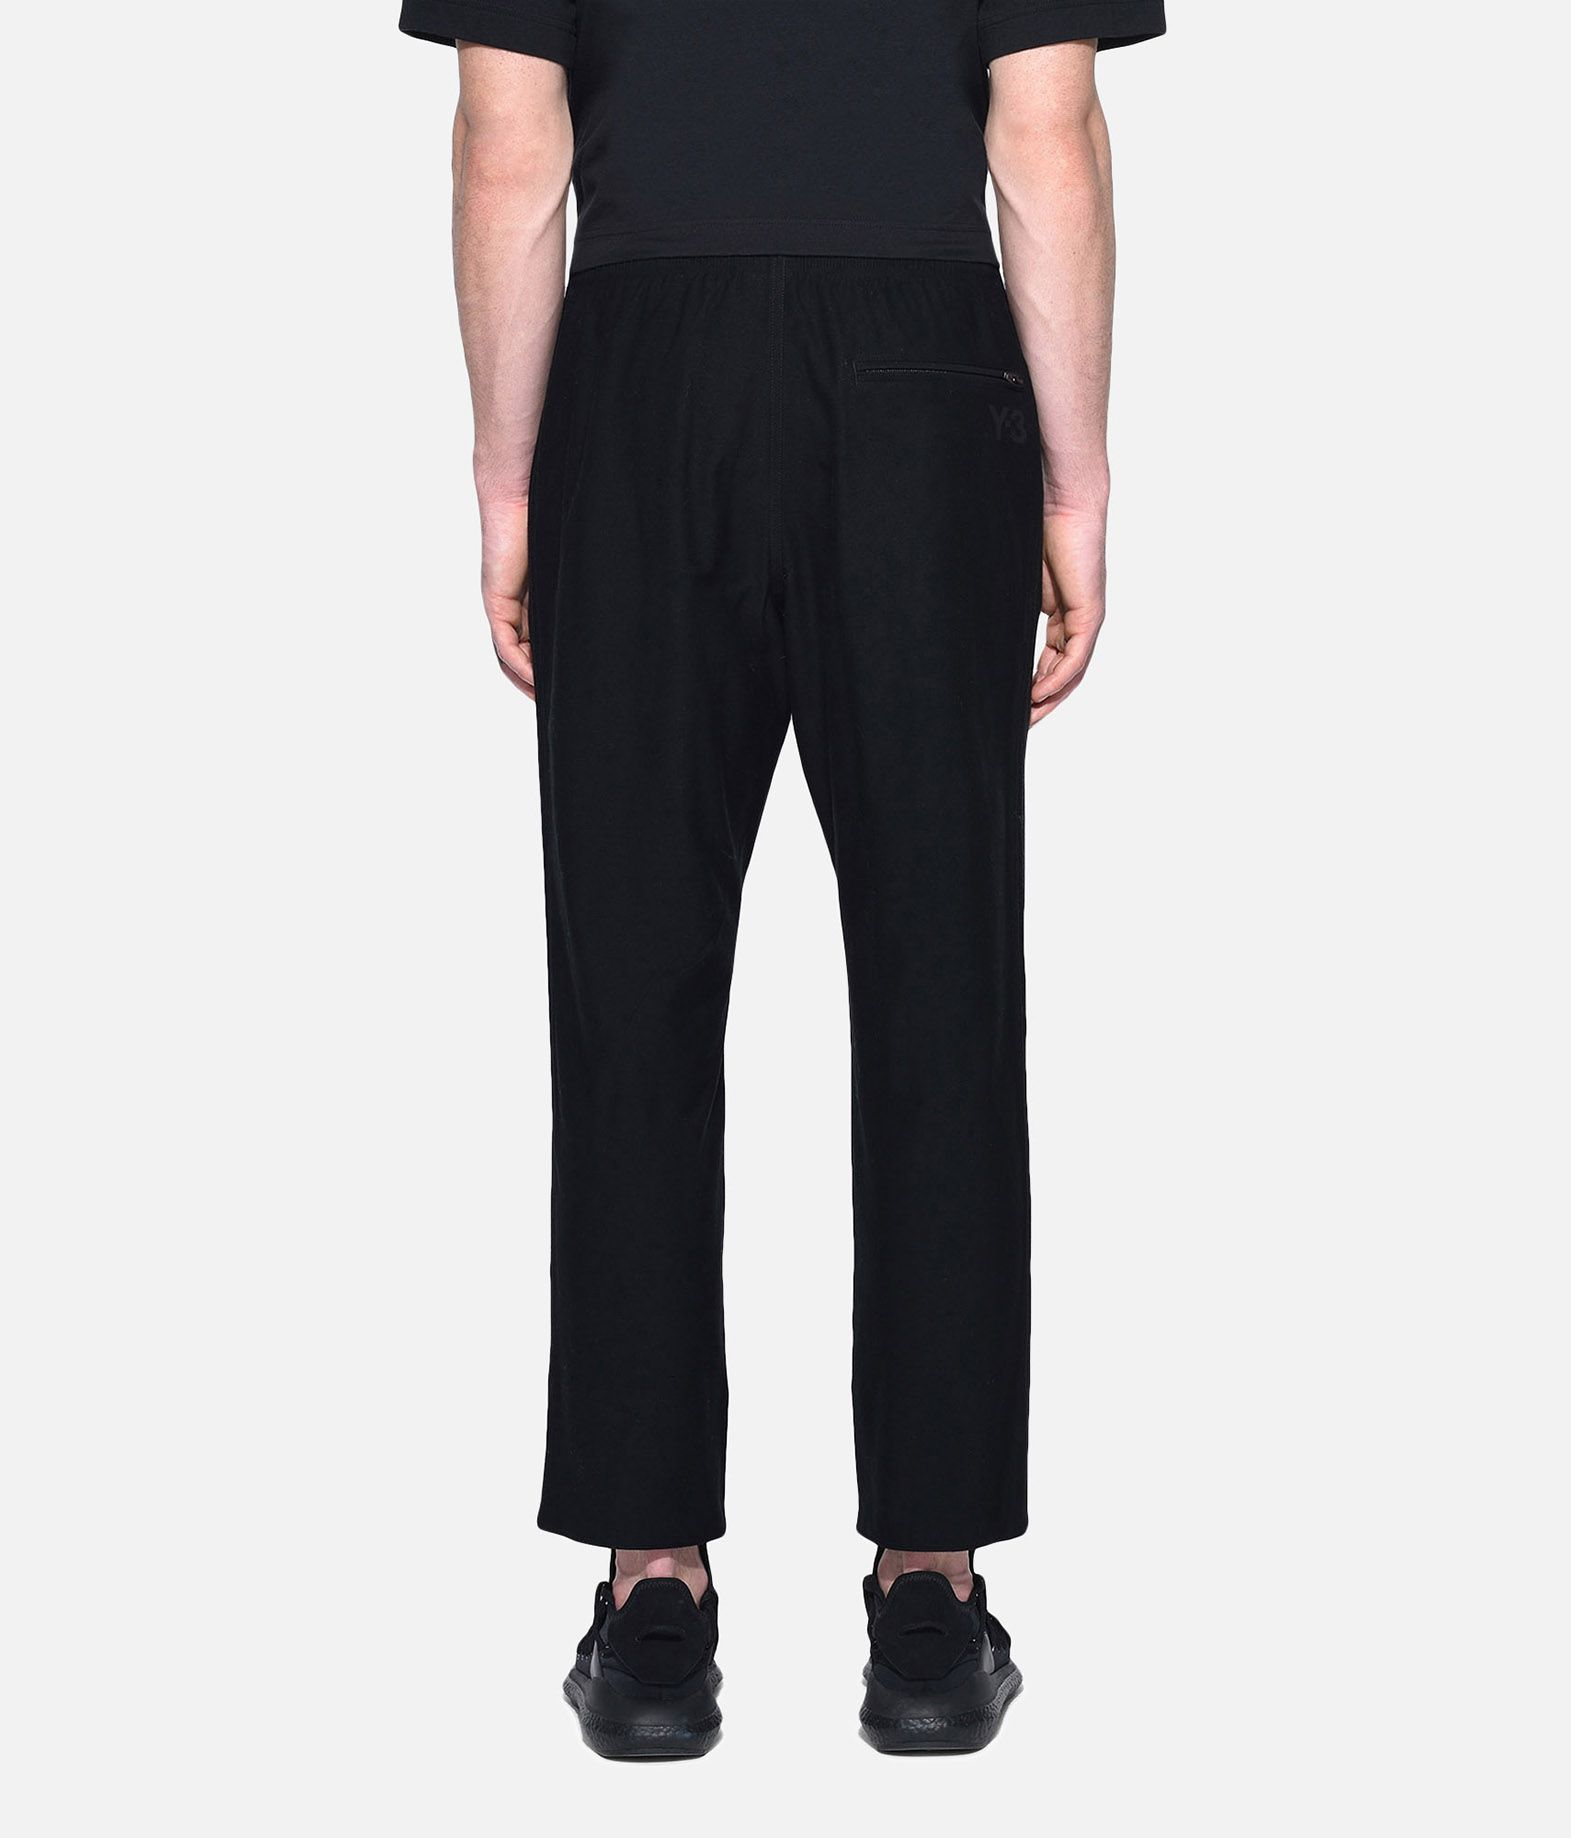 Y-3 Y-3 Twill Cropped Pants Pantalon Homme d